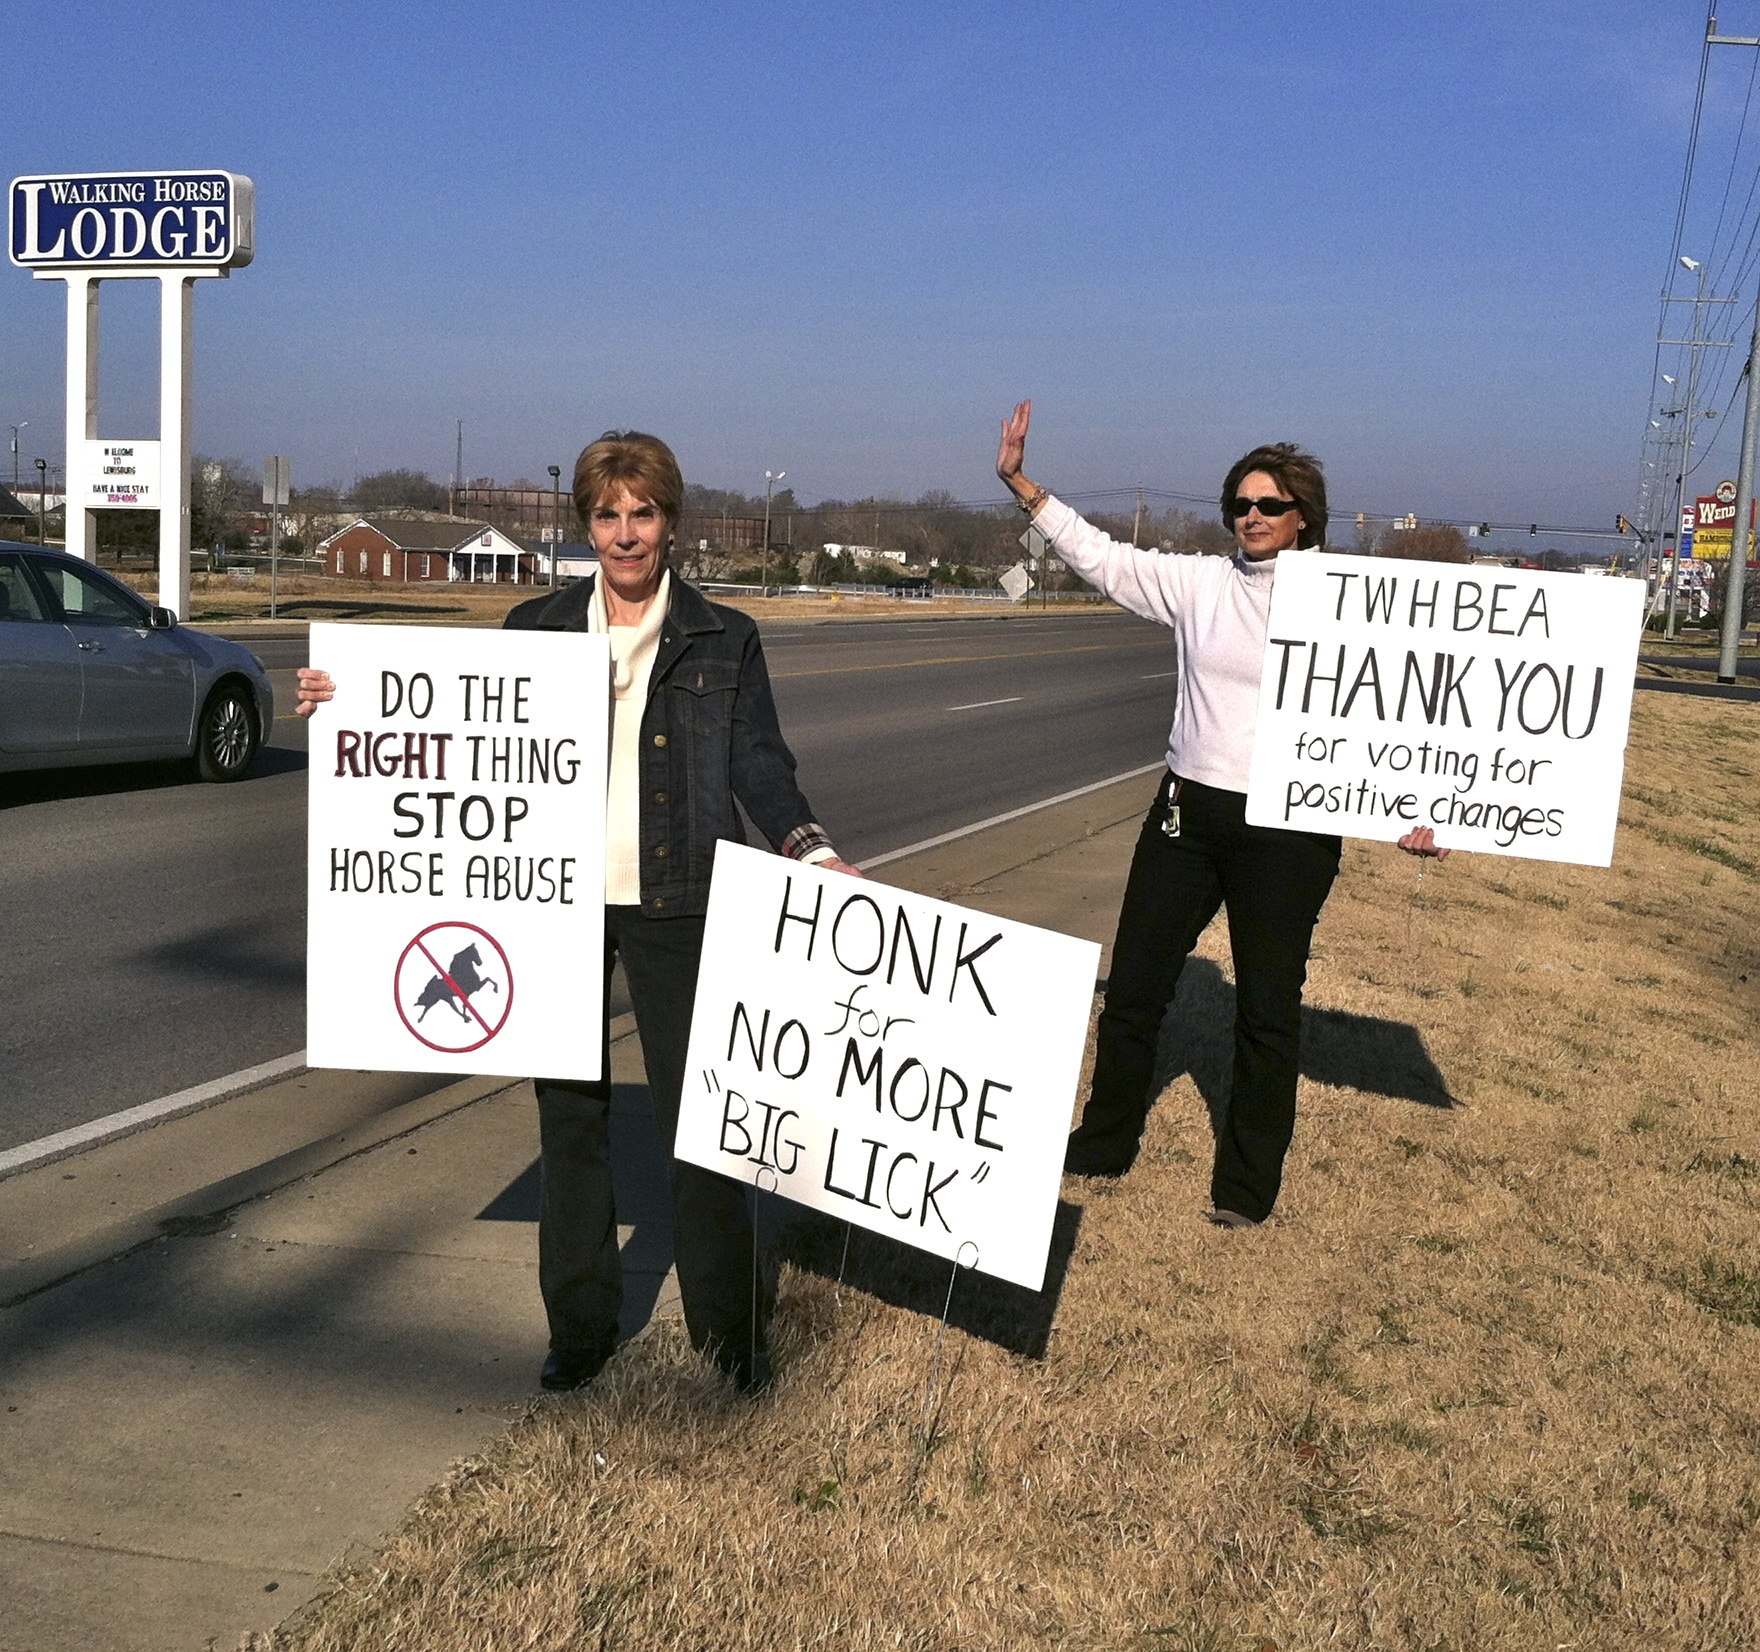 TWO COURAGEOUS LADIES TAKE A STAND